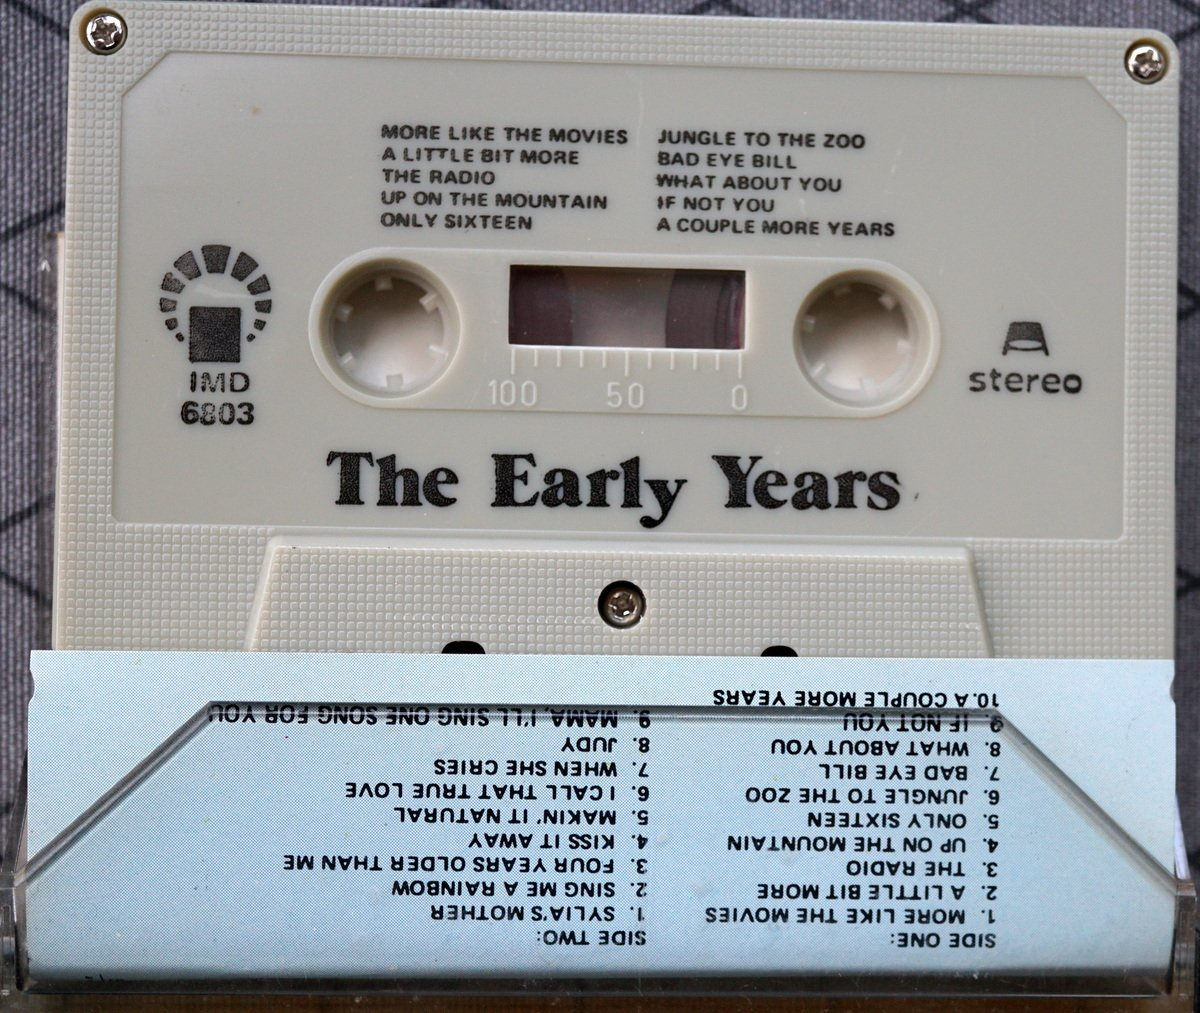 P - IMD 6803 - The Early Years - 2